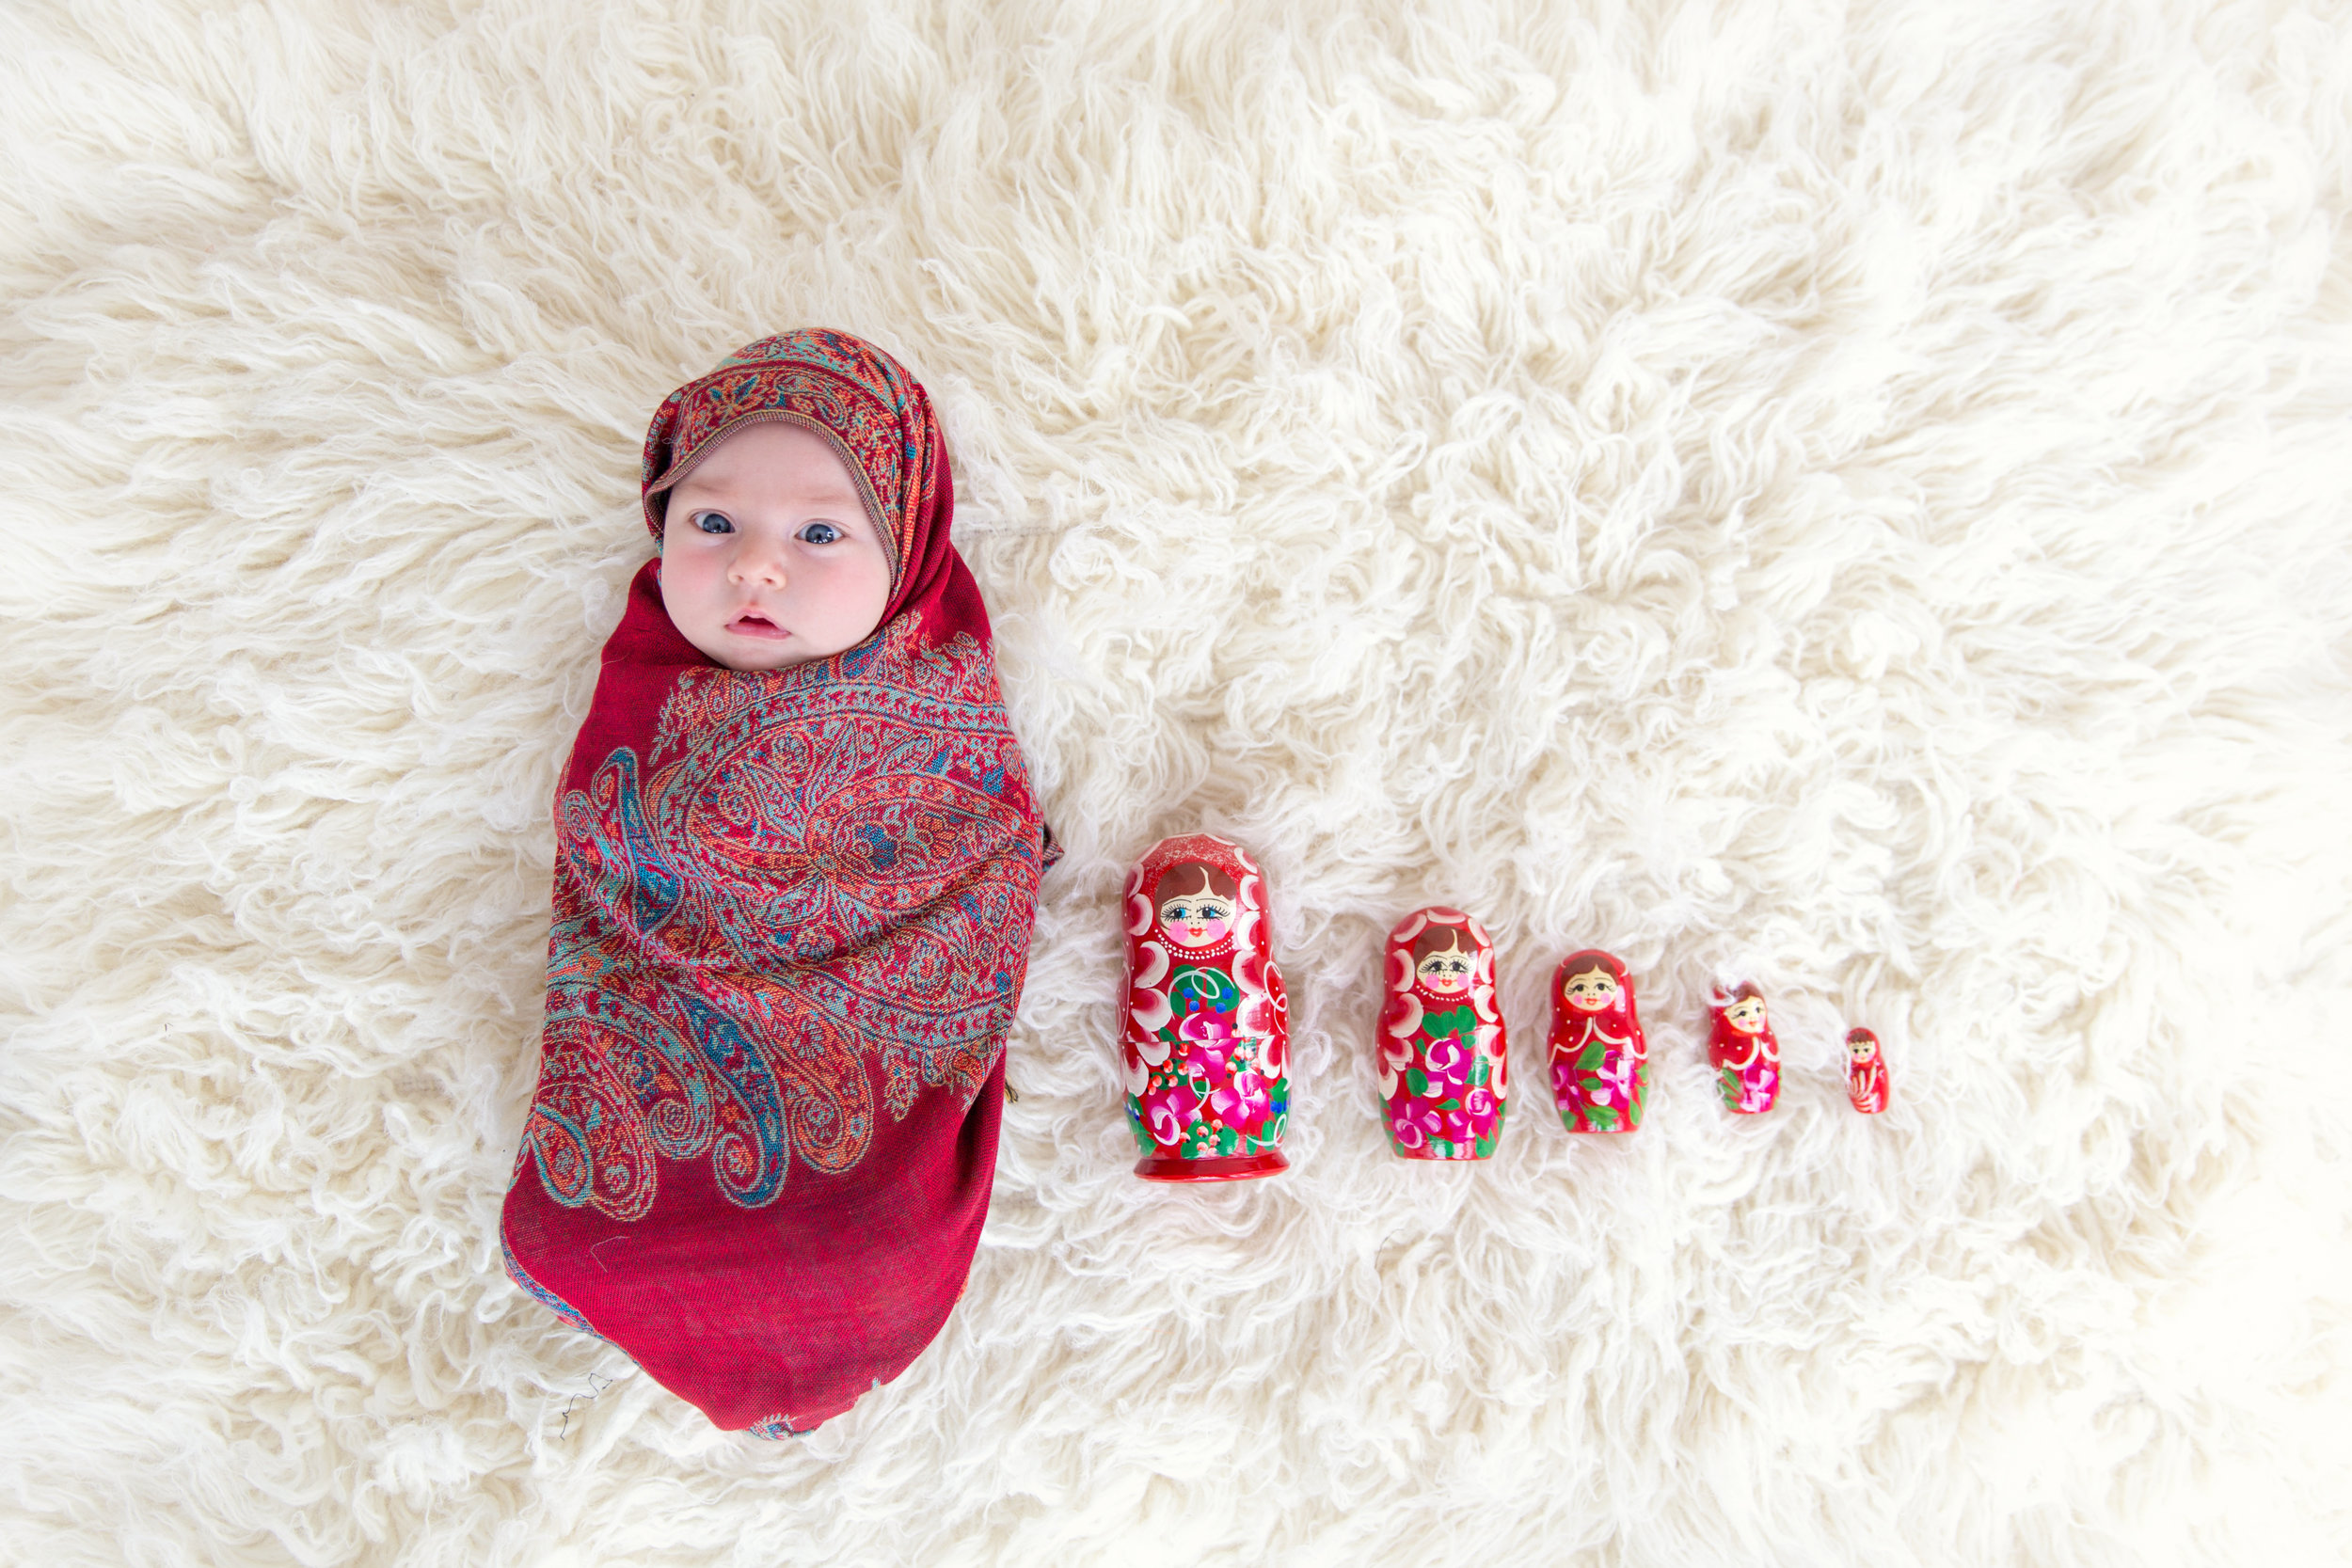 Matryoshka or Russian doll, Baby girl as Matryoshka during her Newborn photoshoot. Calgary Newborn photographer.